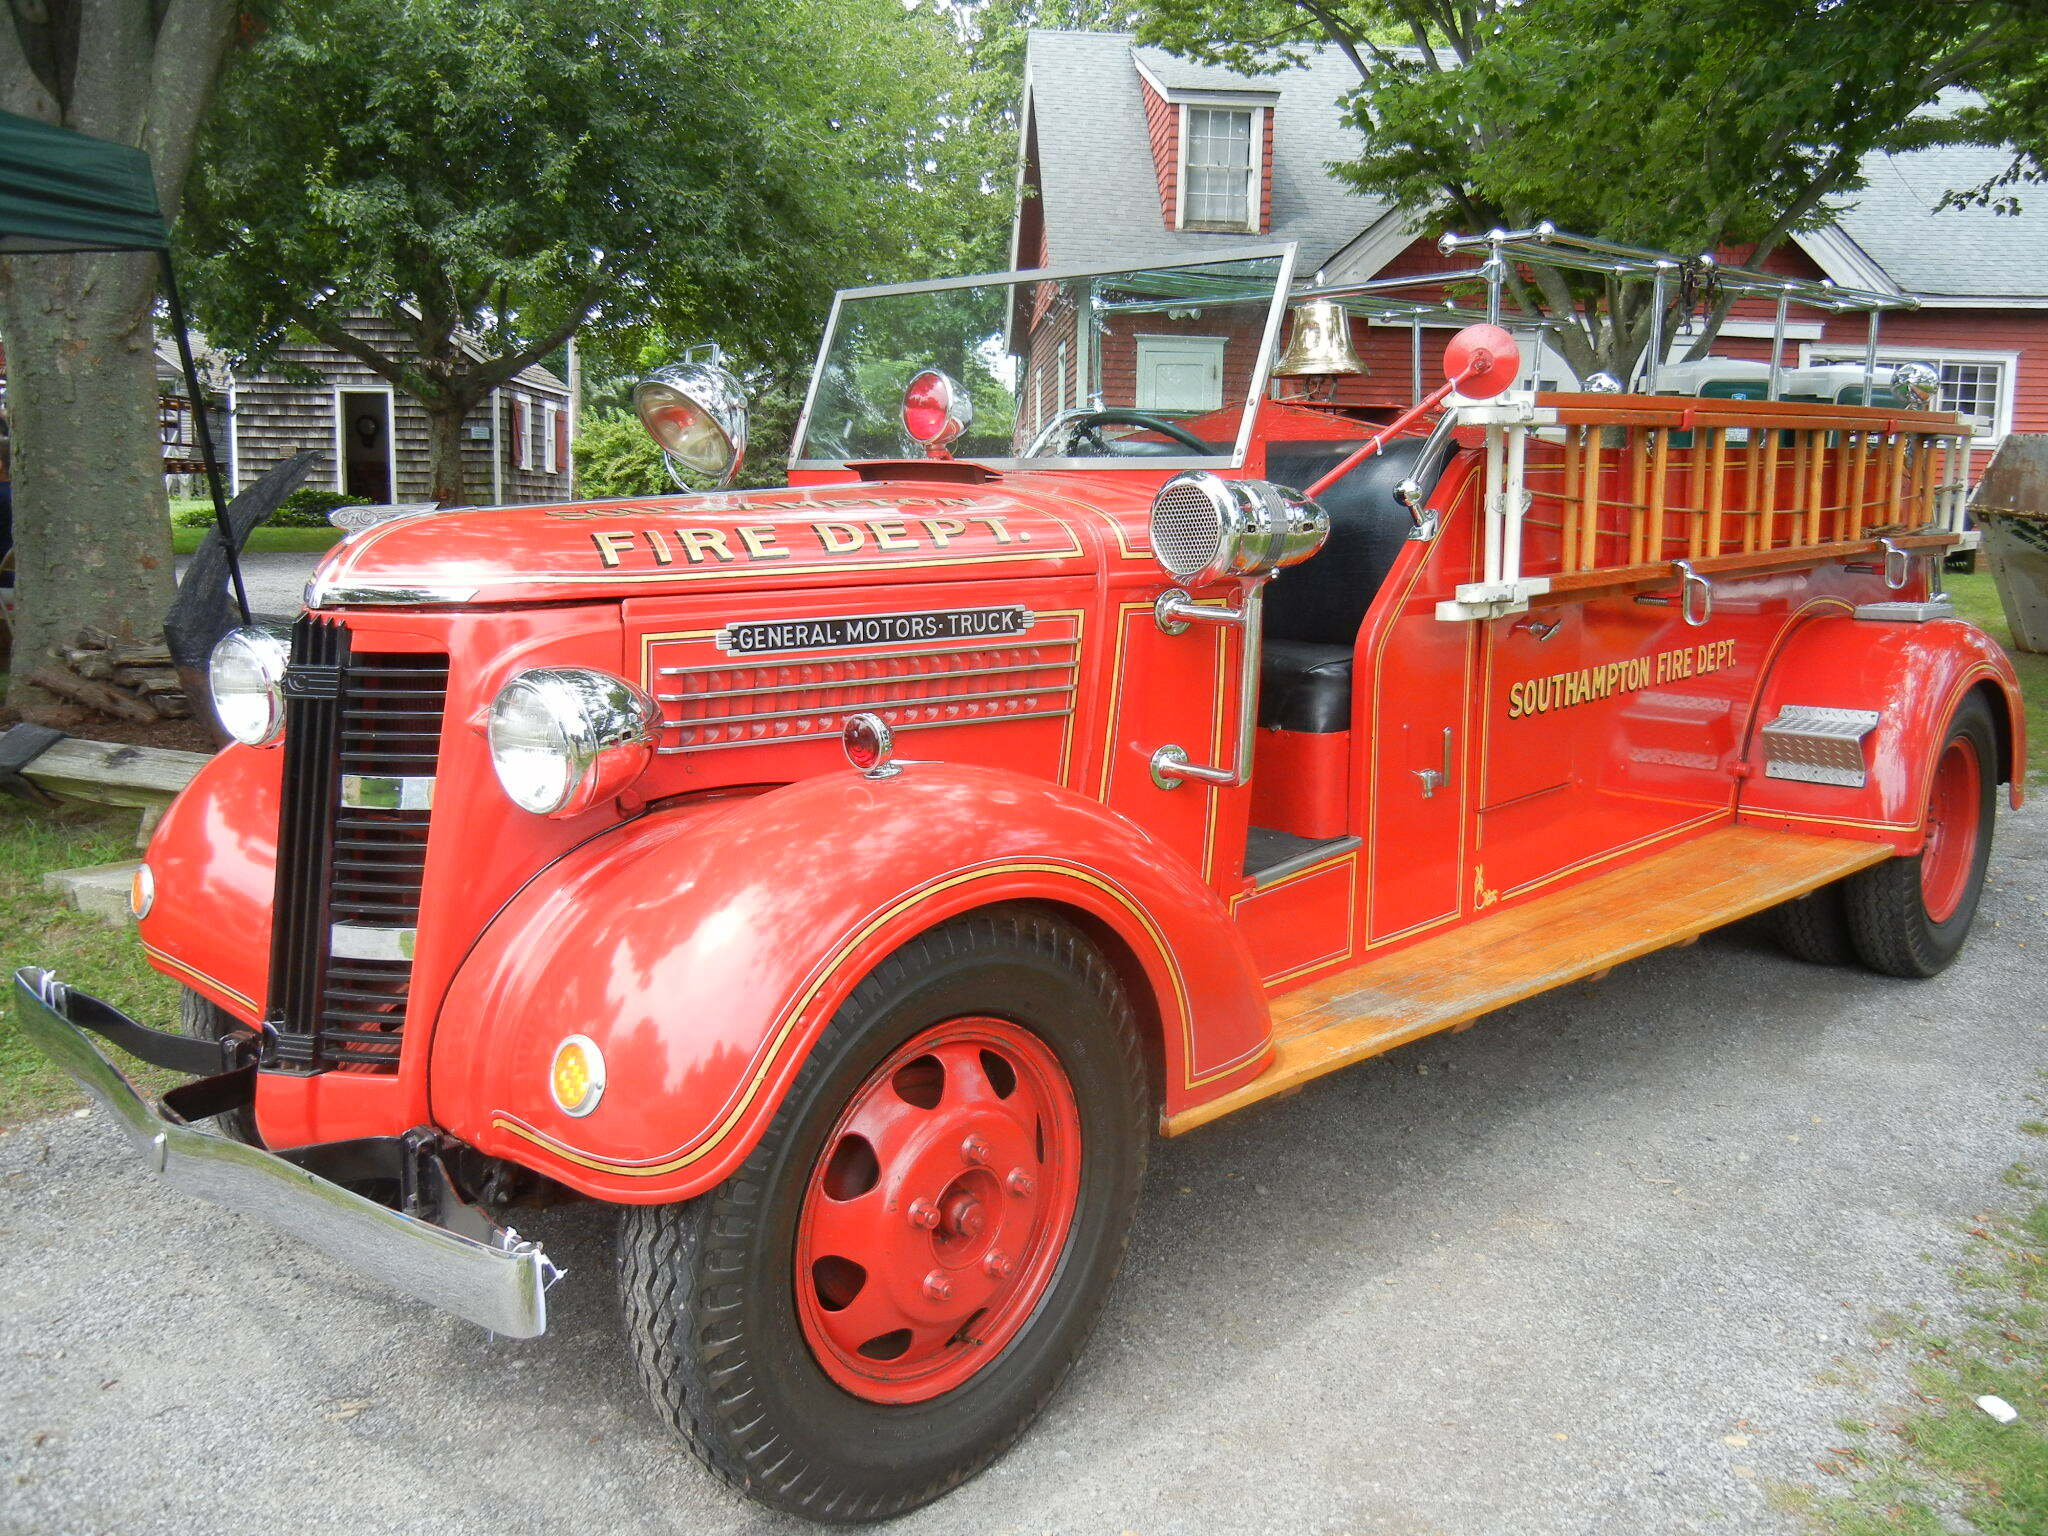 One of the Southampton Fire Department antique truck and ladder vehicles in 2018.